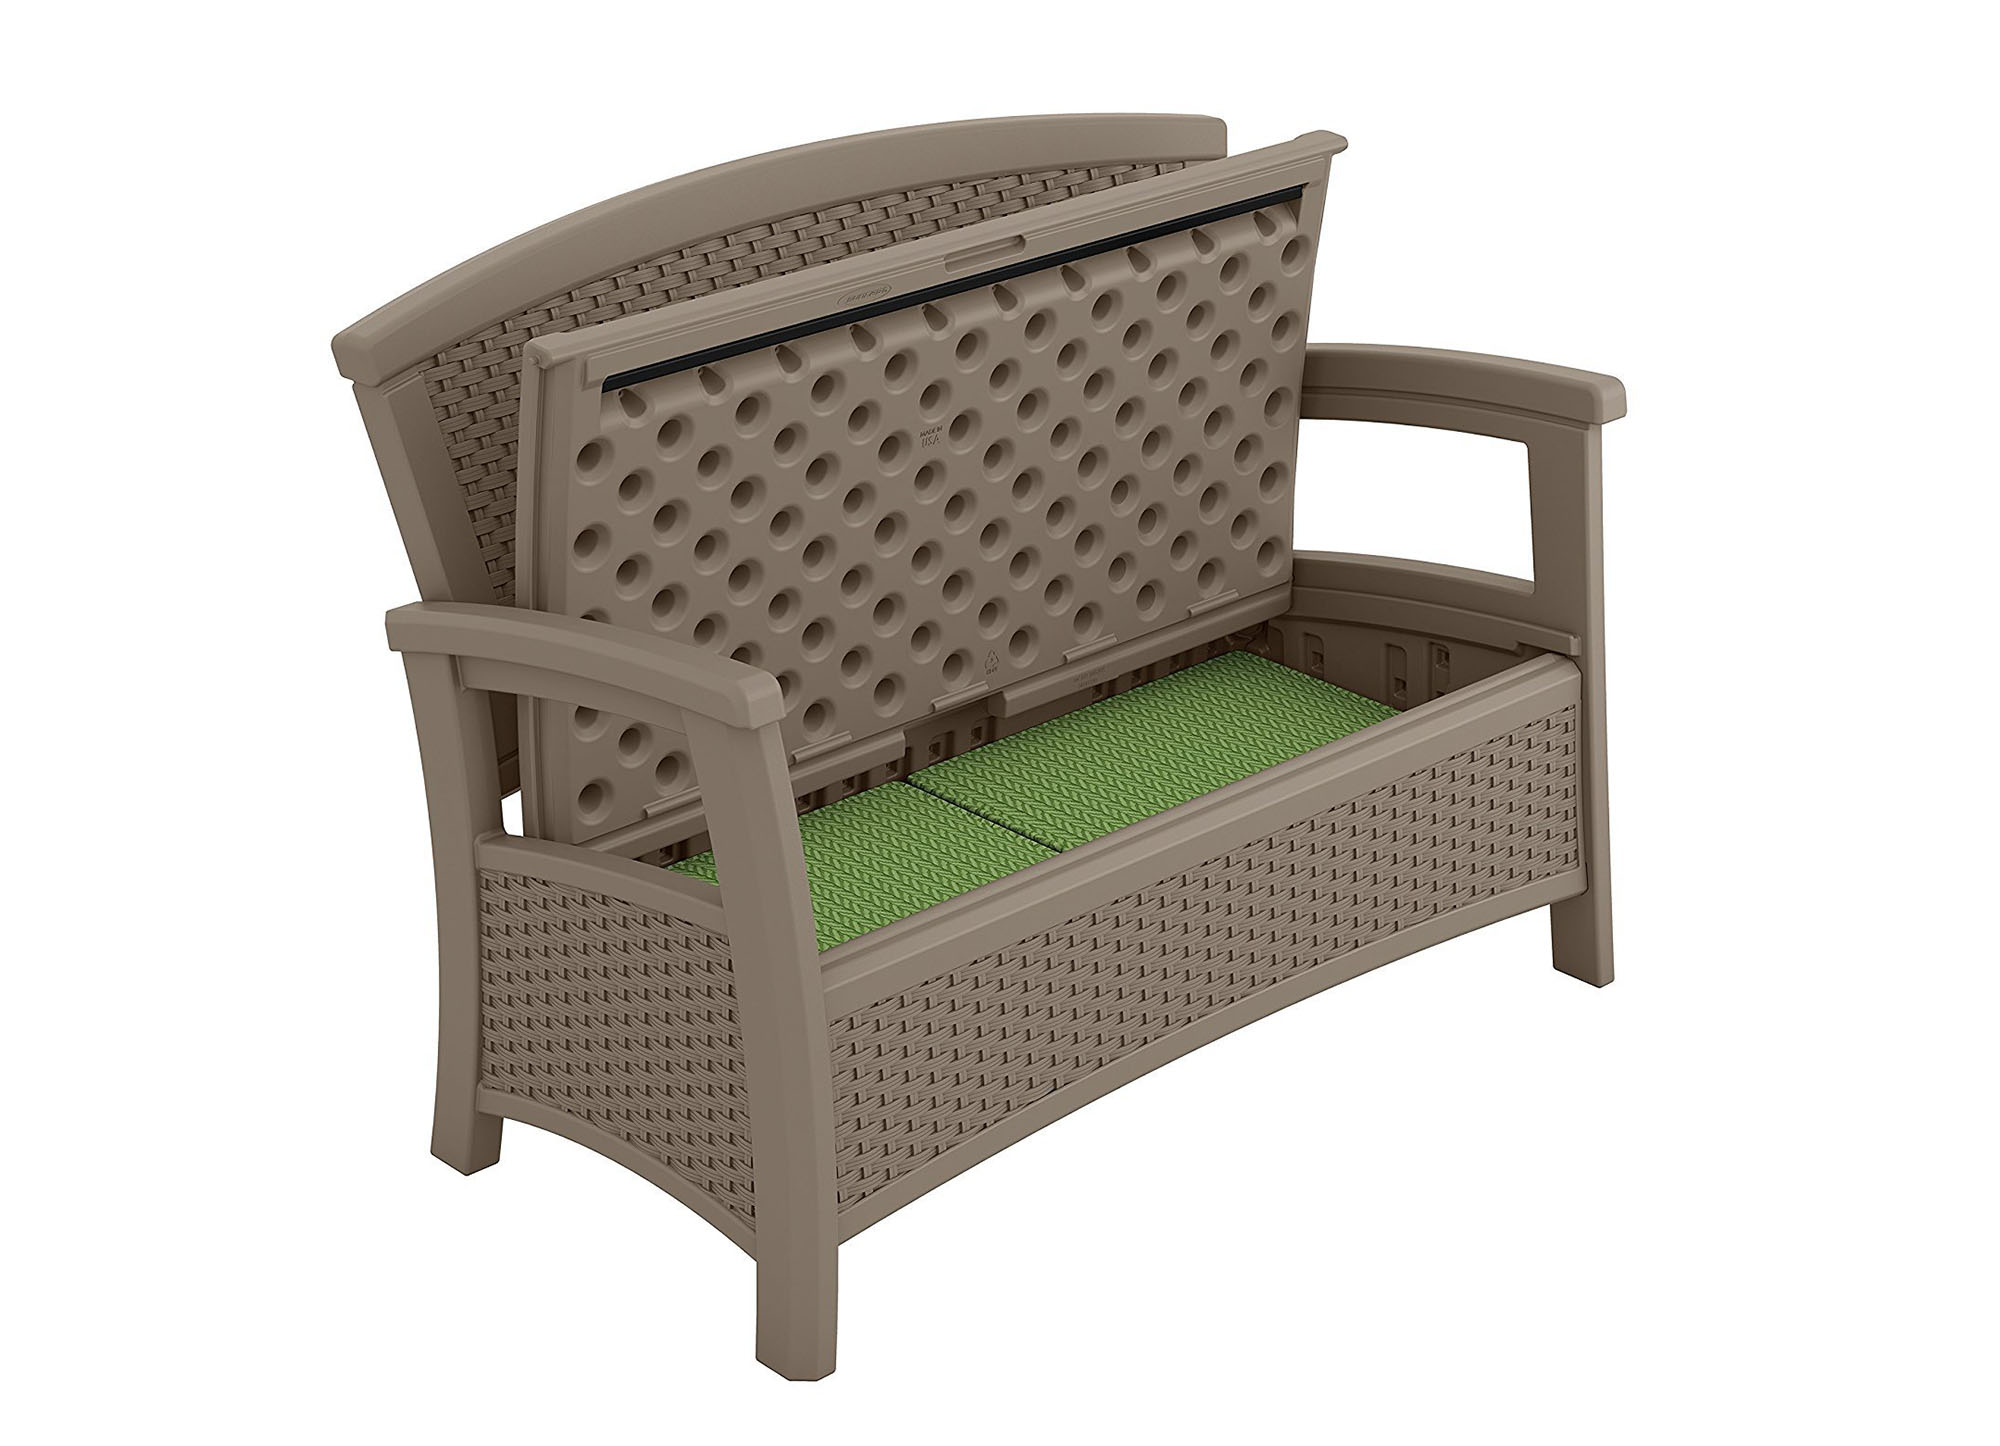 This Affordable Outdoor Storage Bench Will Instantly Declutter Your Backyard for Good